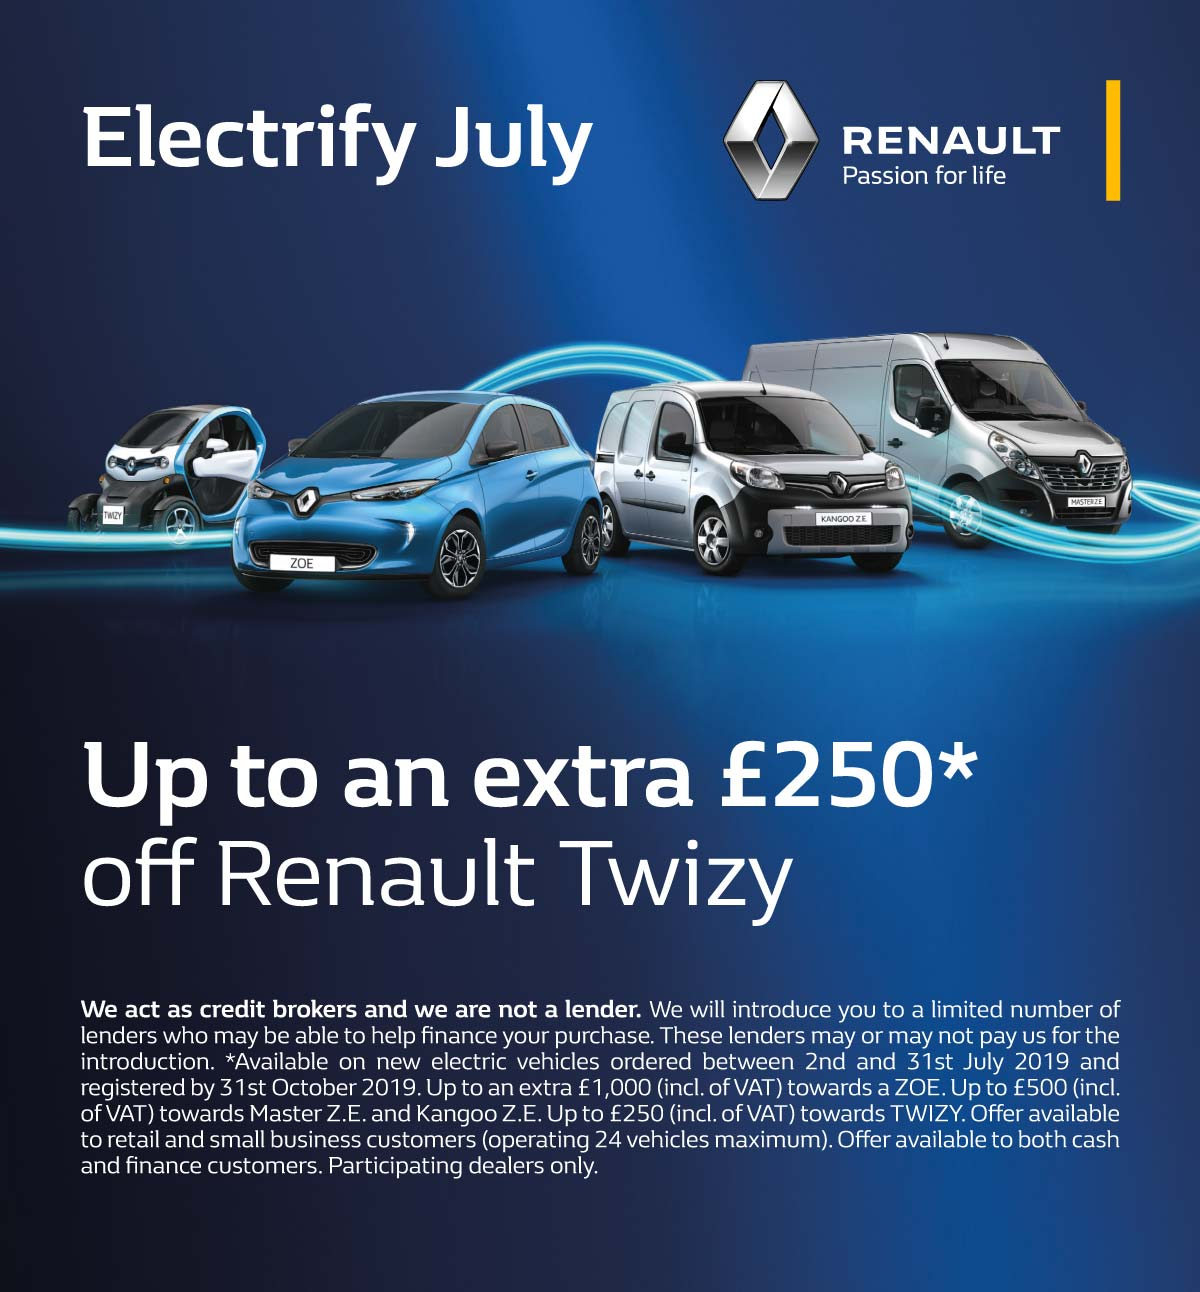 [Renault Twizy] Twizy Electrify July 020719 Banner 1